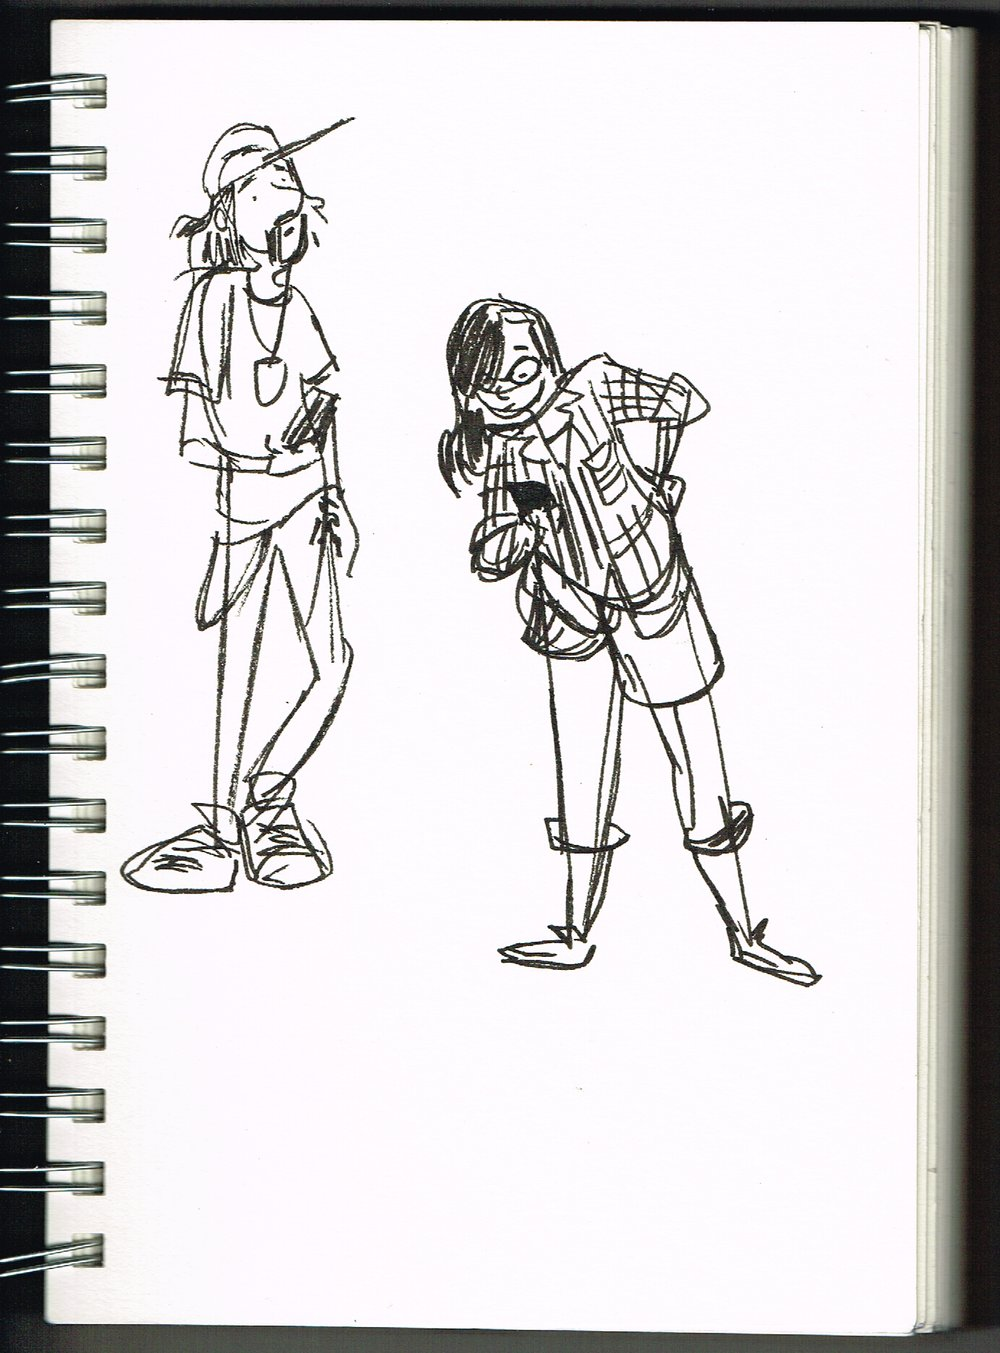 vacation_sketchbook_021.jpg